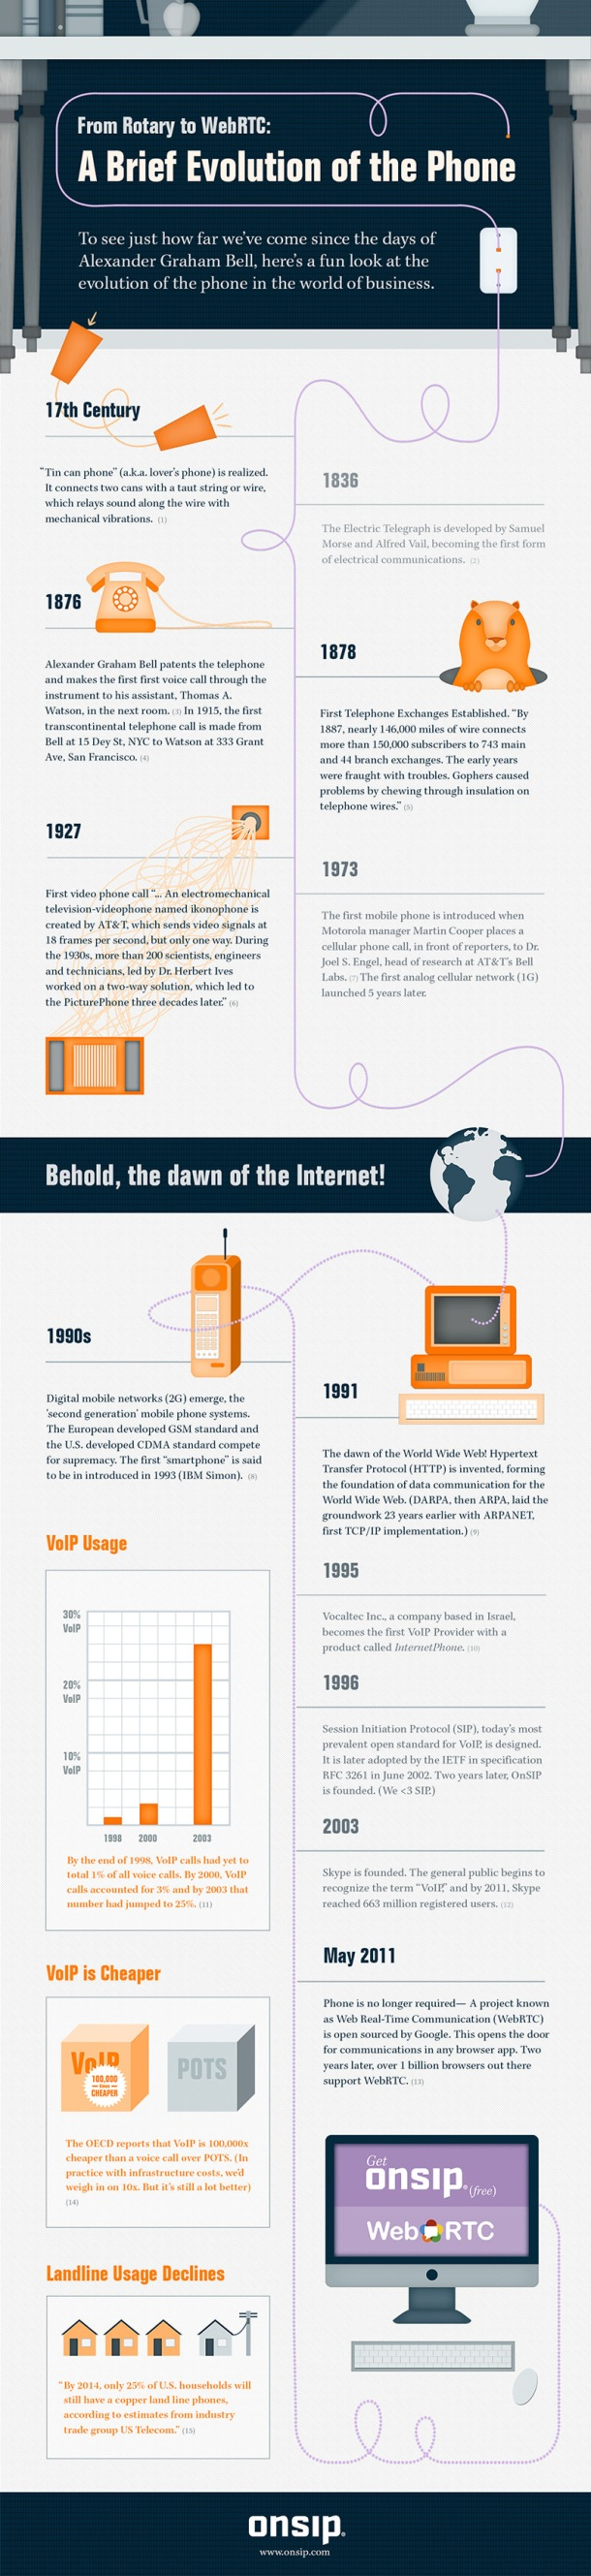 from-rotary-to-webrtc-a-brief-evolution-of-the-phone_525eec5feb367